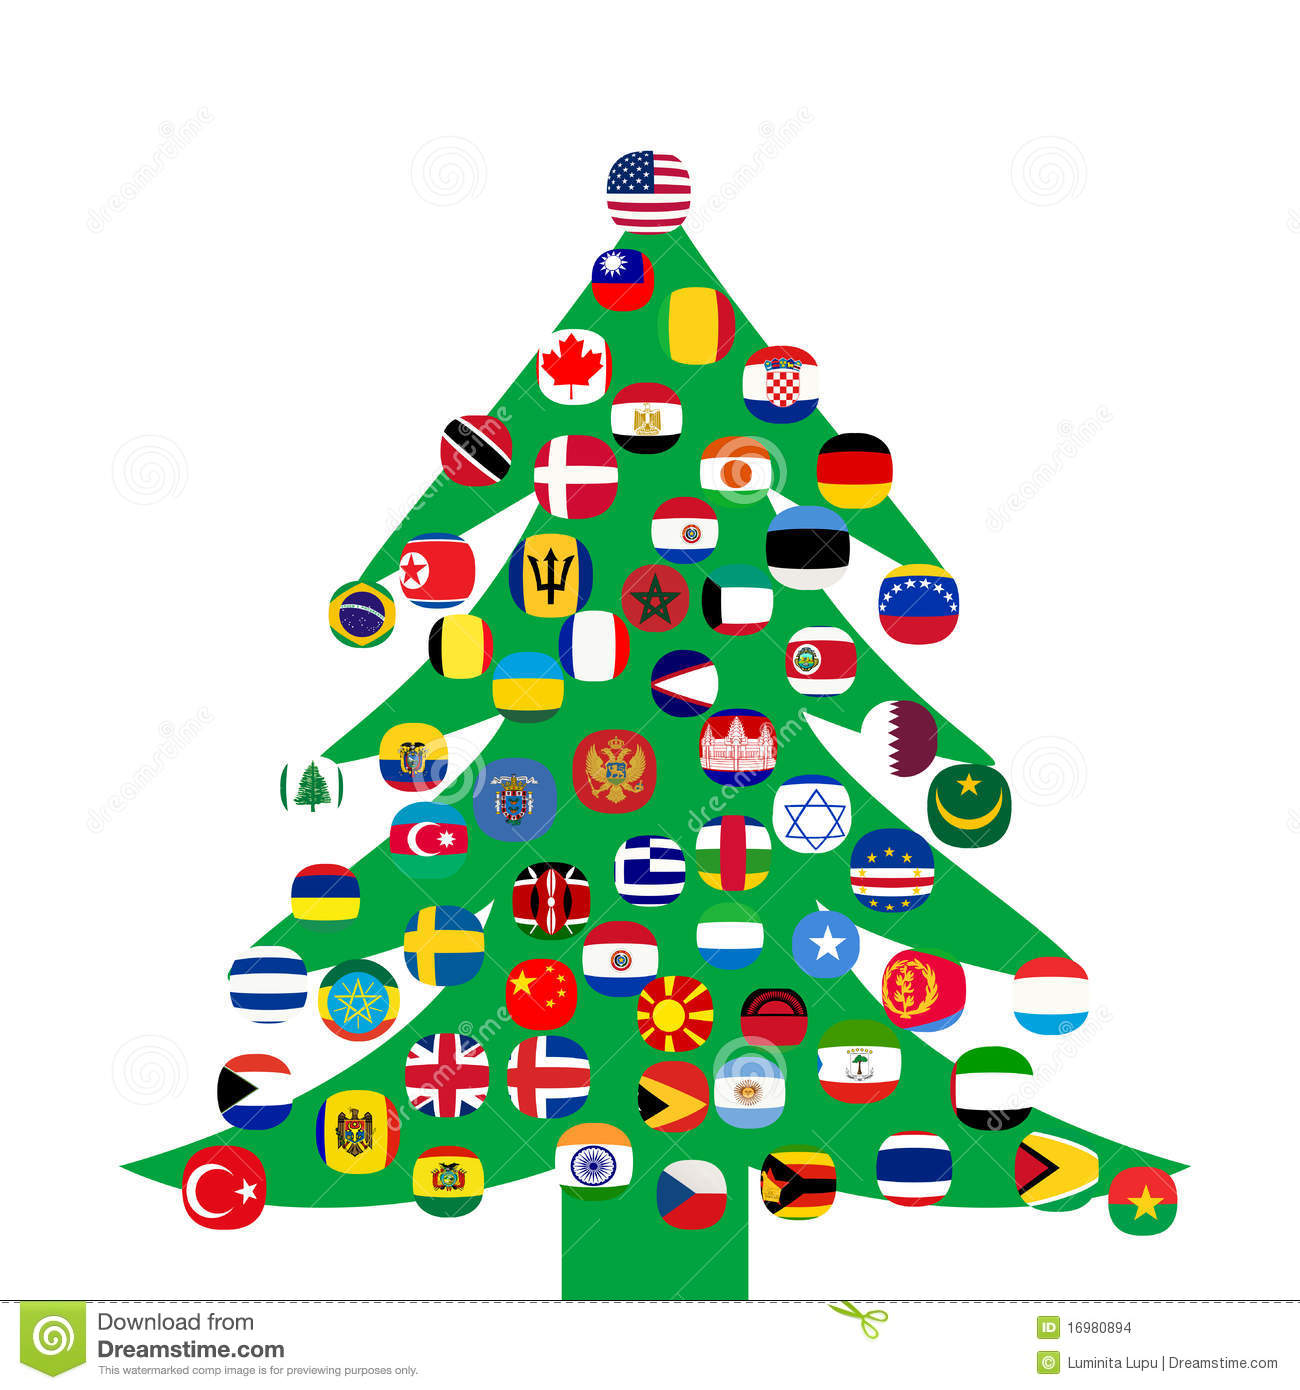 Christmas tree with flags stock illustration. Illustration of ball ... fb75aff3cae4